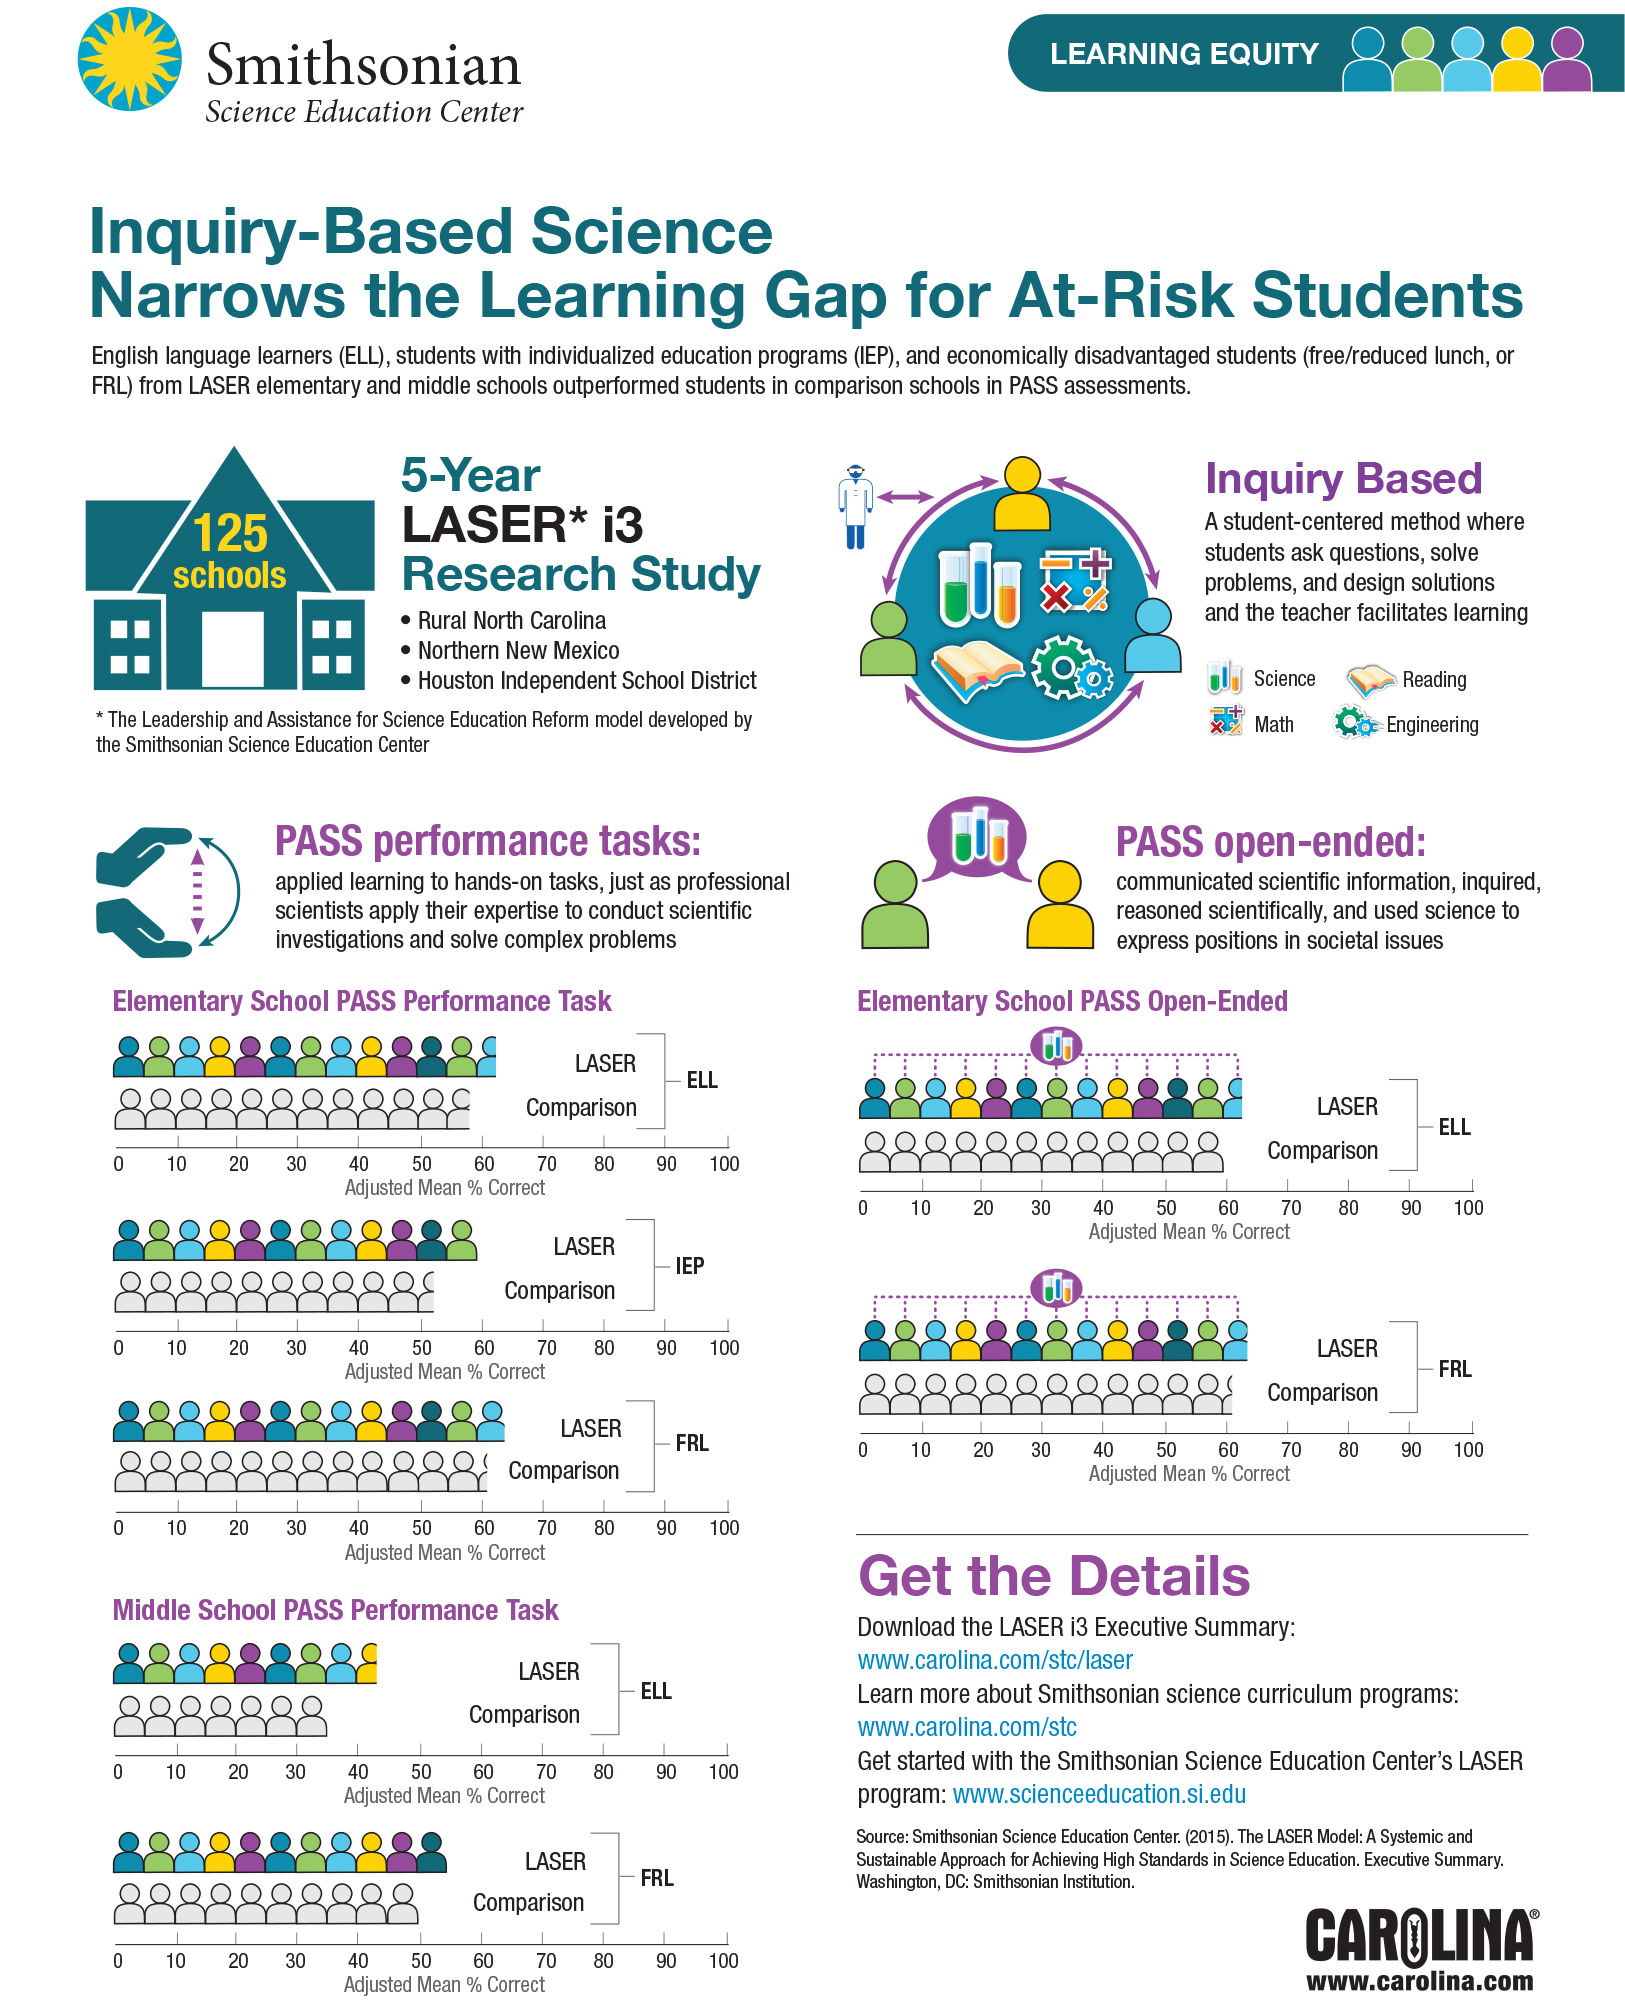 Inquiry-Based Narrows the Learning Gap for At-Risk Students